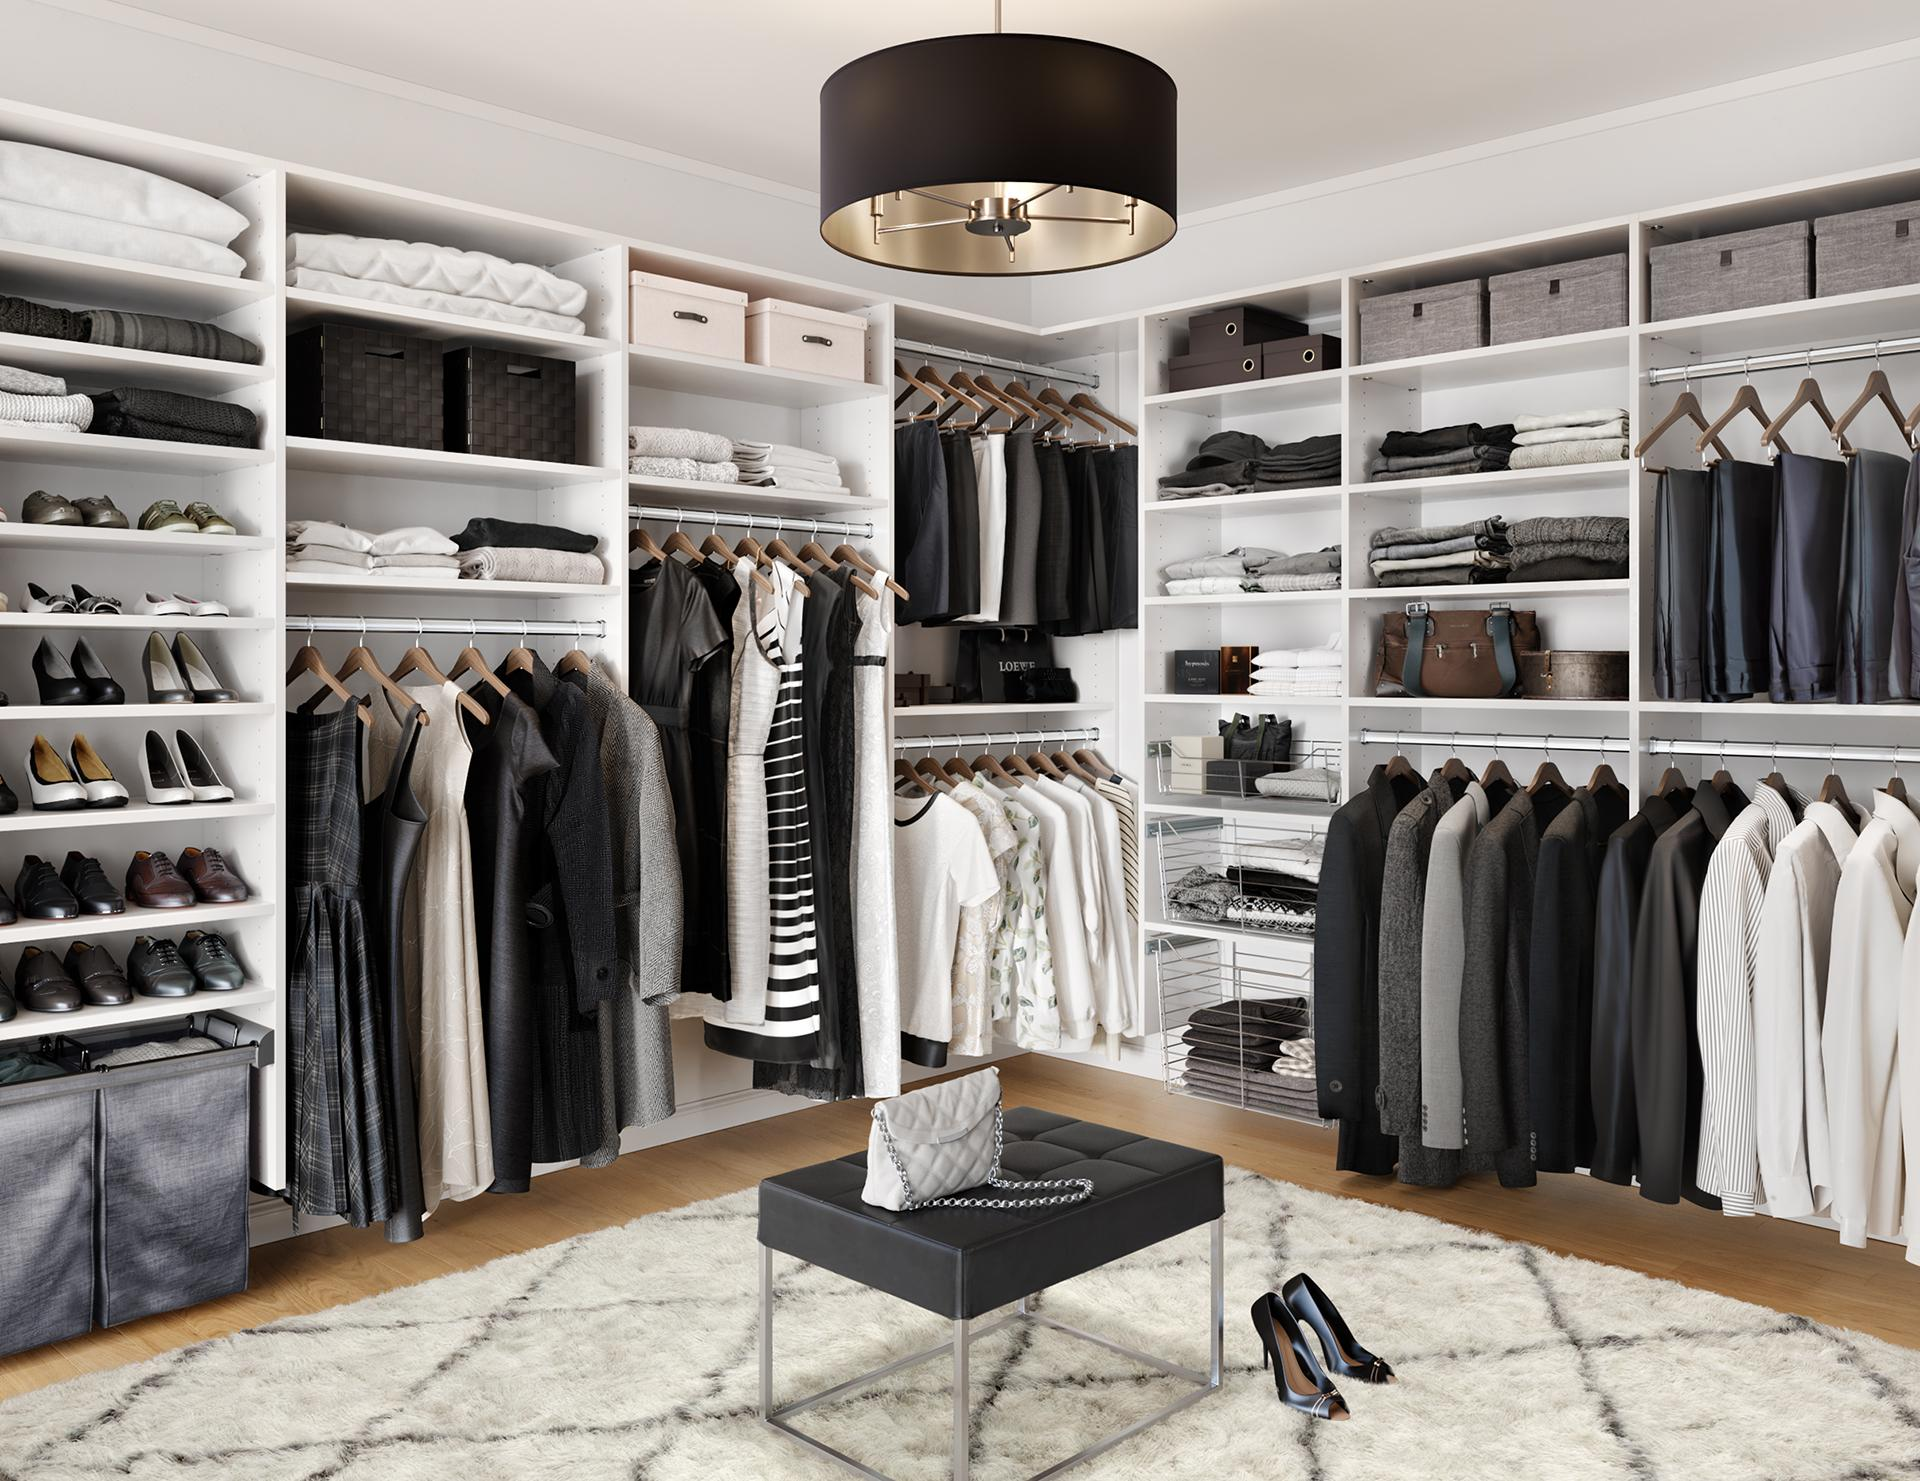 Hamlin Walk in A thoughtfully designed closet